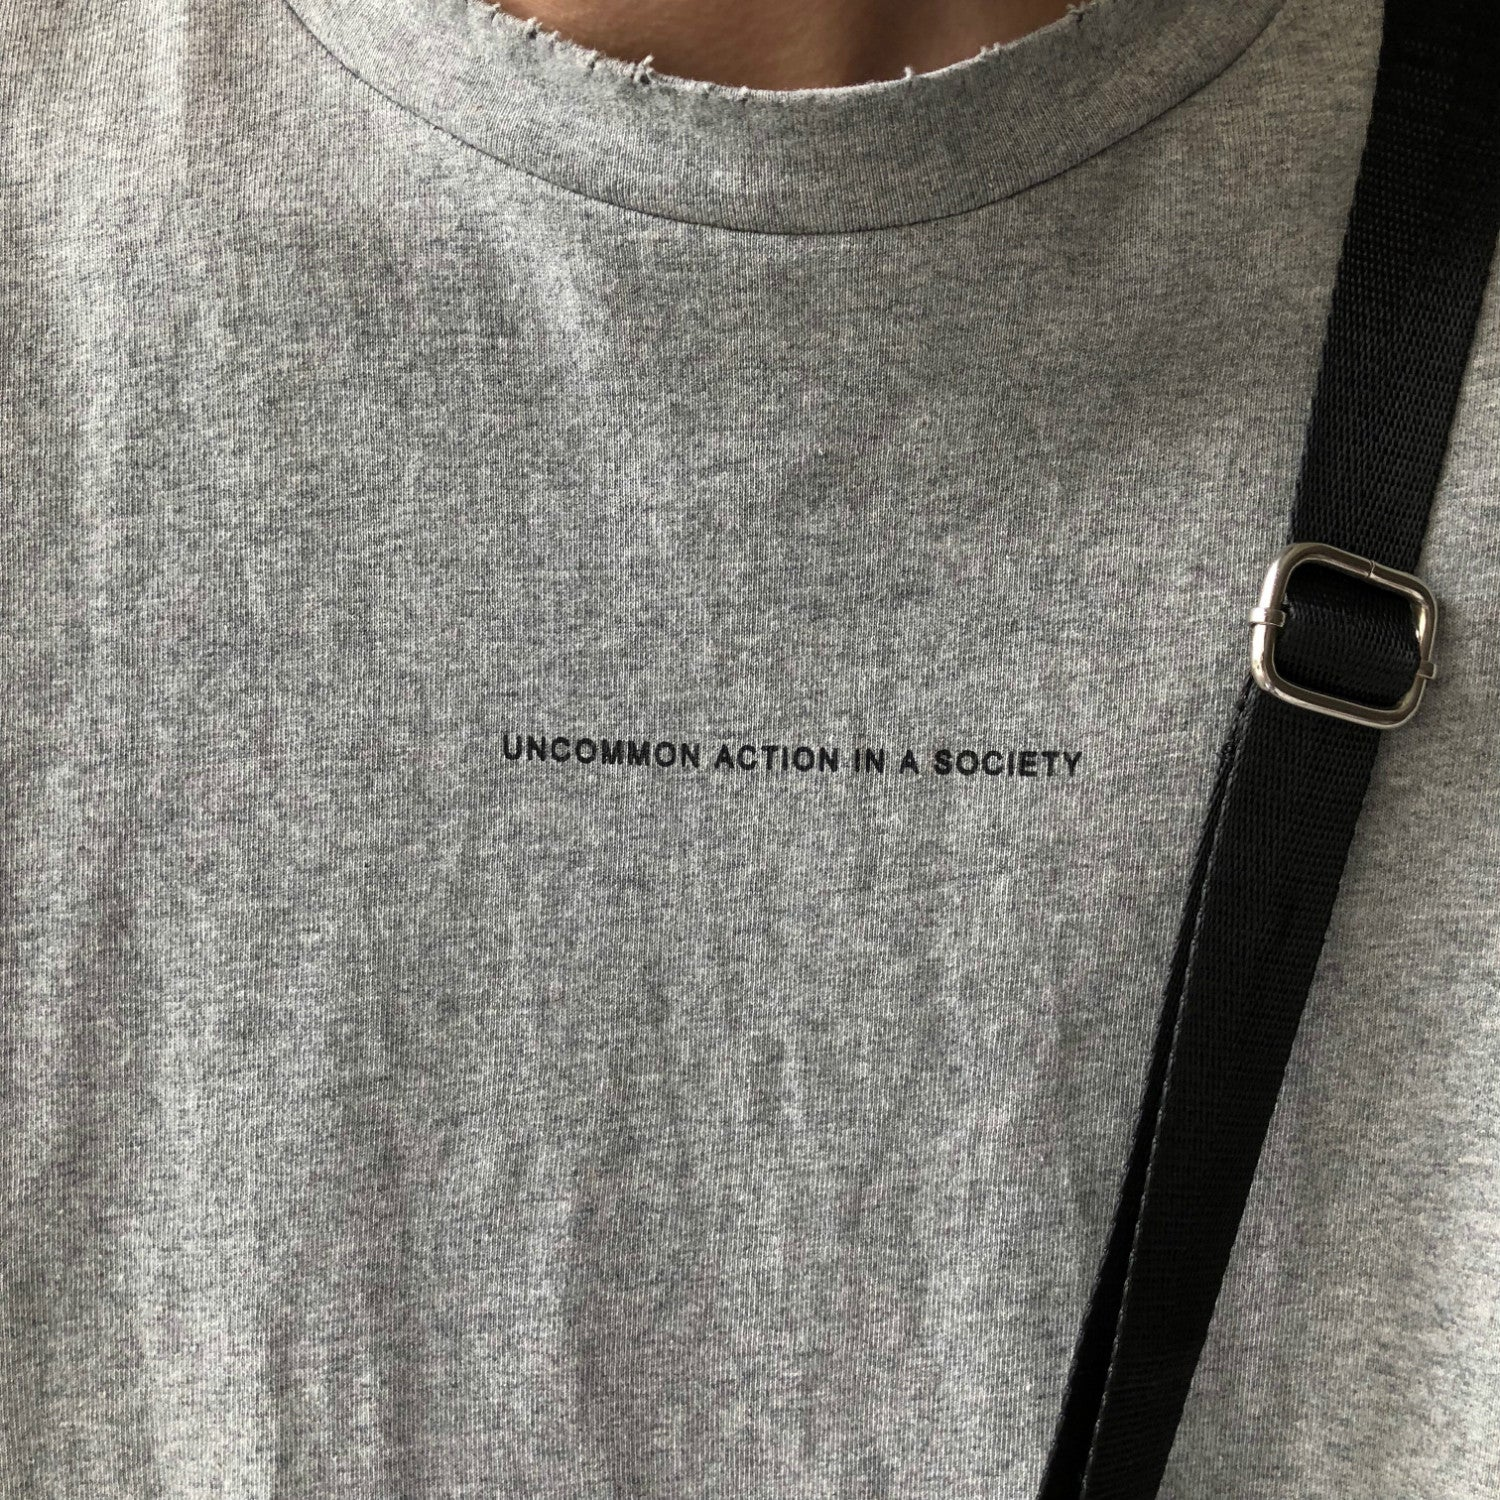 Uncommon Action T-Shirt